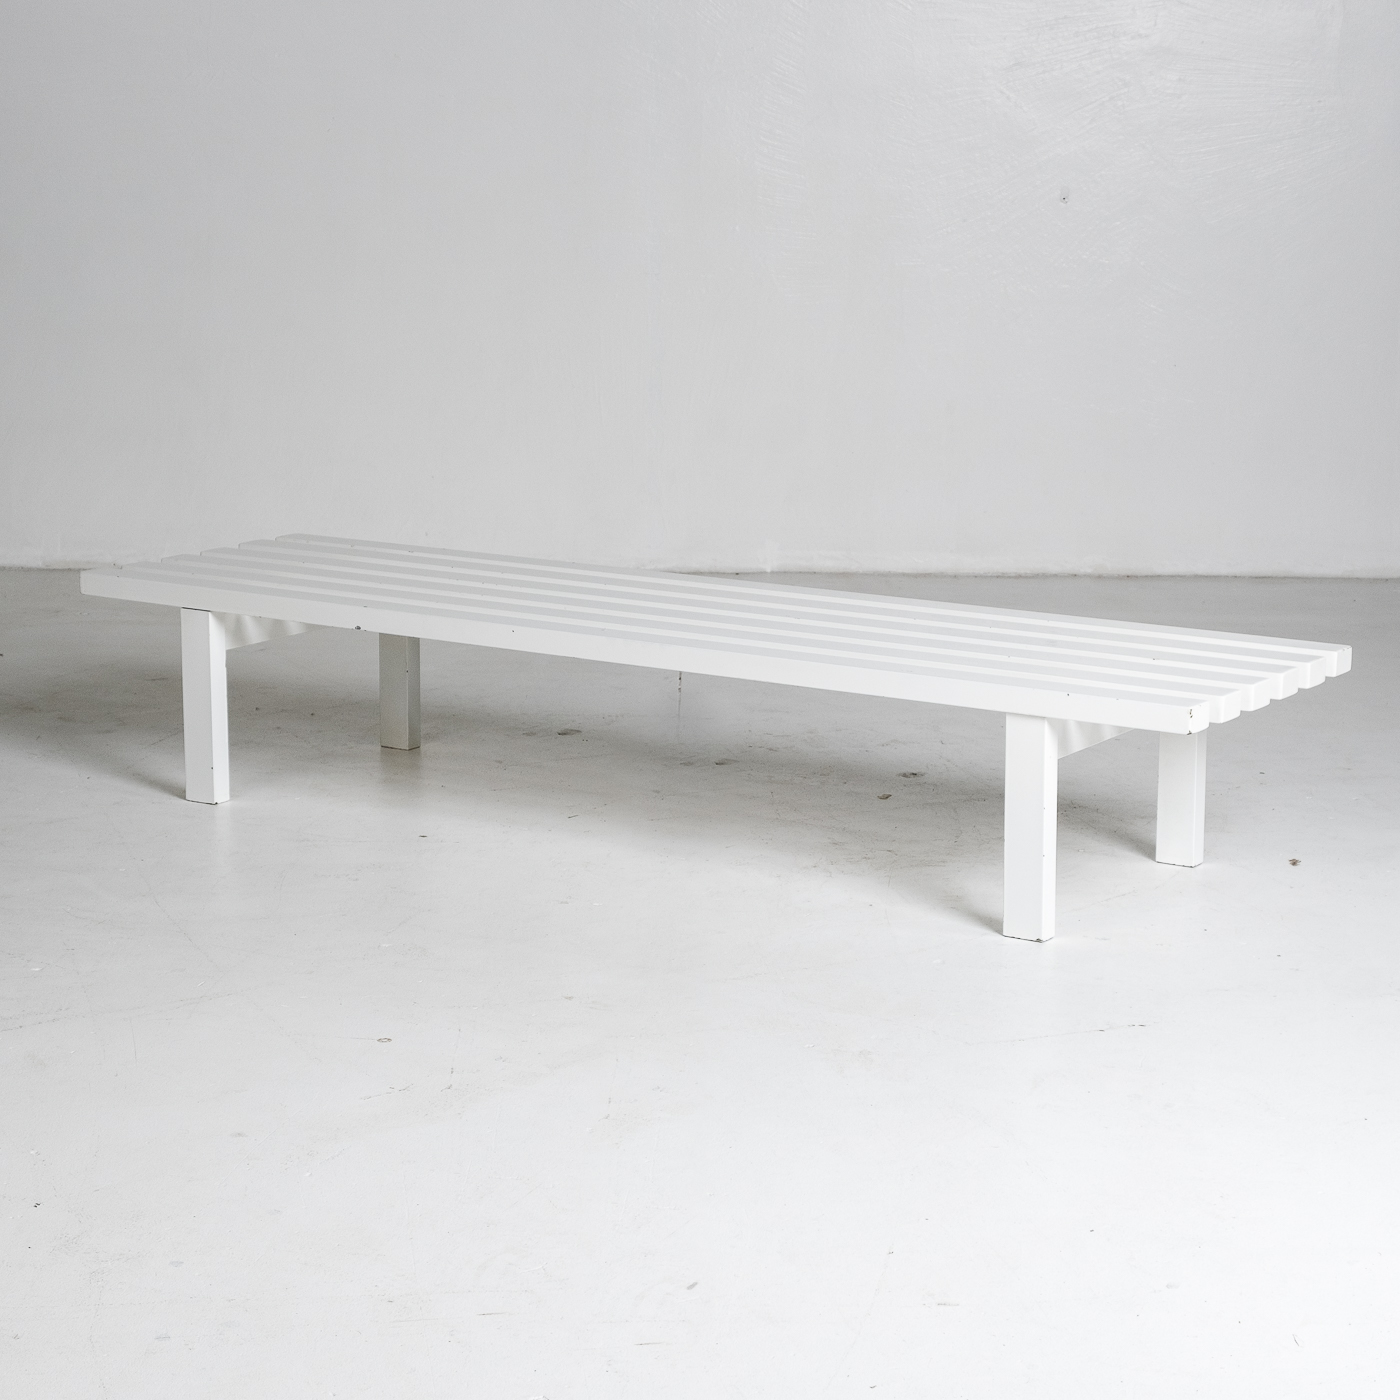 Bench In White Steel In The Style Of Metaform, 1970s, The Netherlands 2